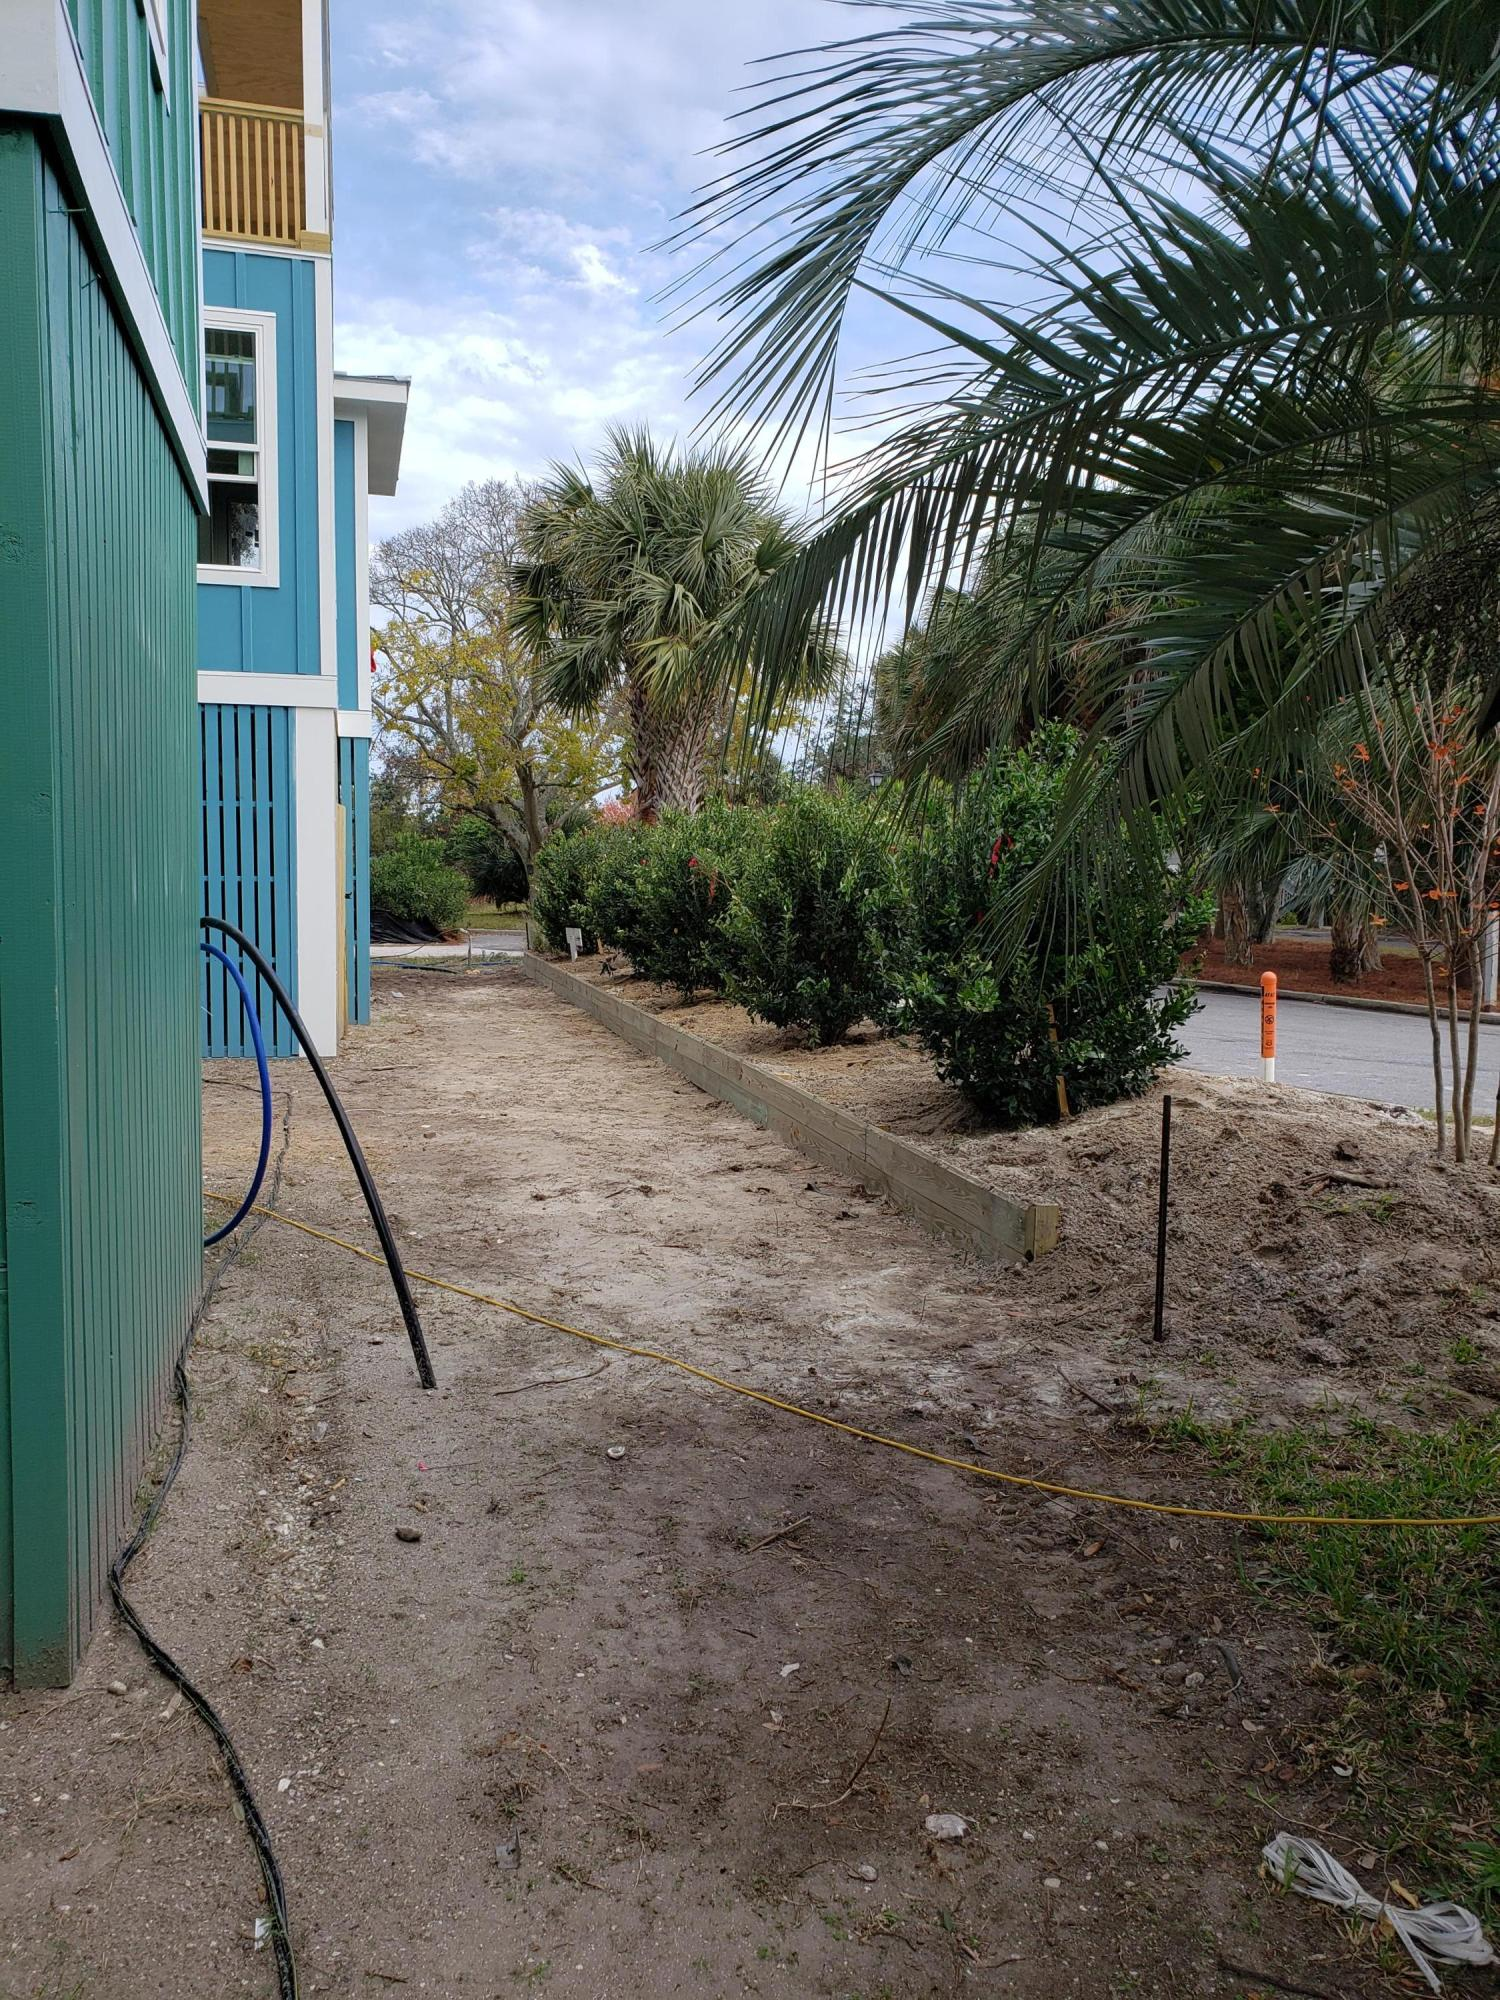 Mariners Cay Homes For Sale - 16 Mariners Cay, Folly Beach, SC - 19